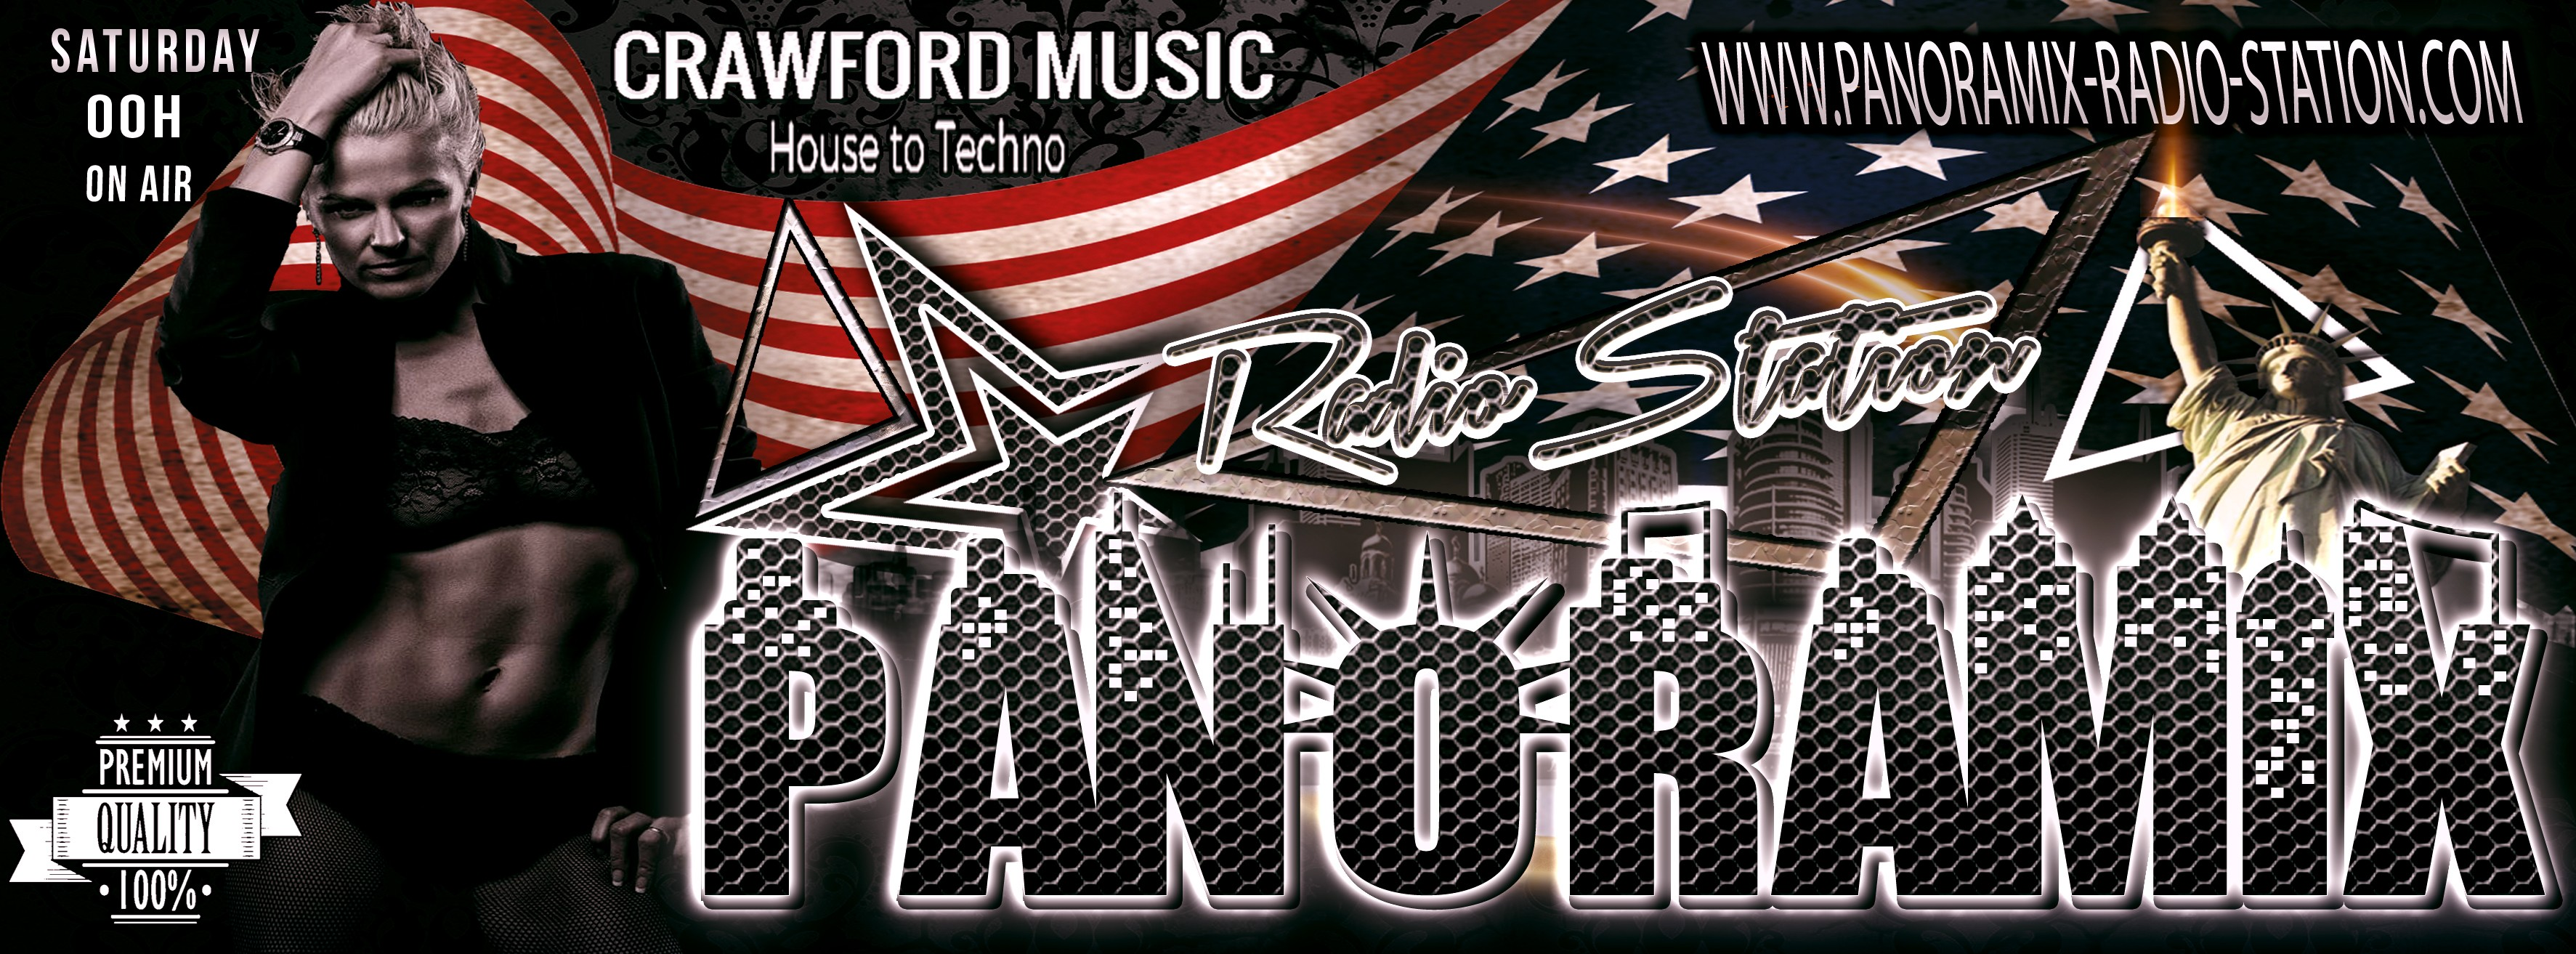 http://panoramix-radio-station.com/wp-content/uploads/2017/01/CRAWFORD-MUSIC-LISA-USA-bannier-2017-PANO.jpg